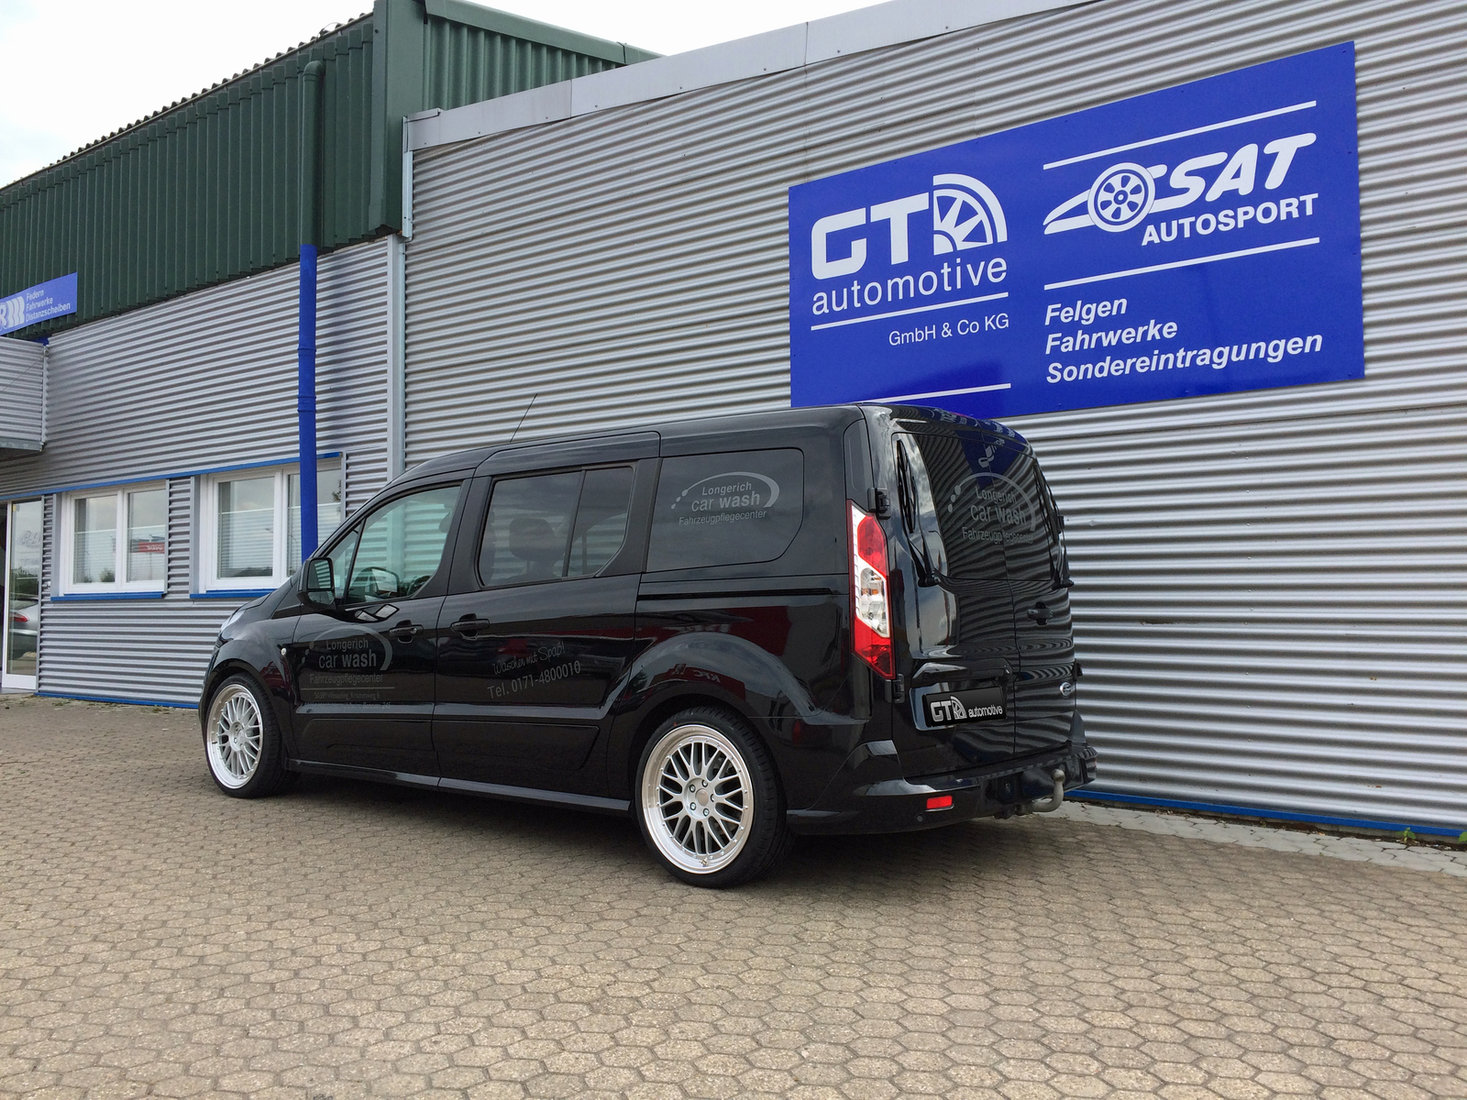 ford tourneo connect typ pj2 galerie by gt automotive gmbh. Black Bedroom Furniture Sets. Home Design Ideas